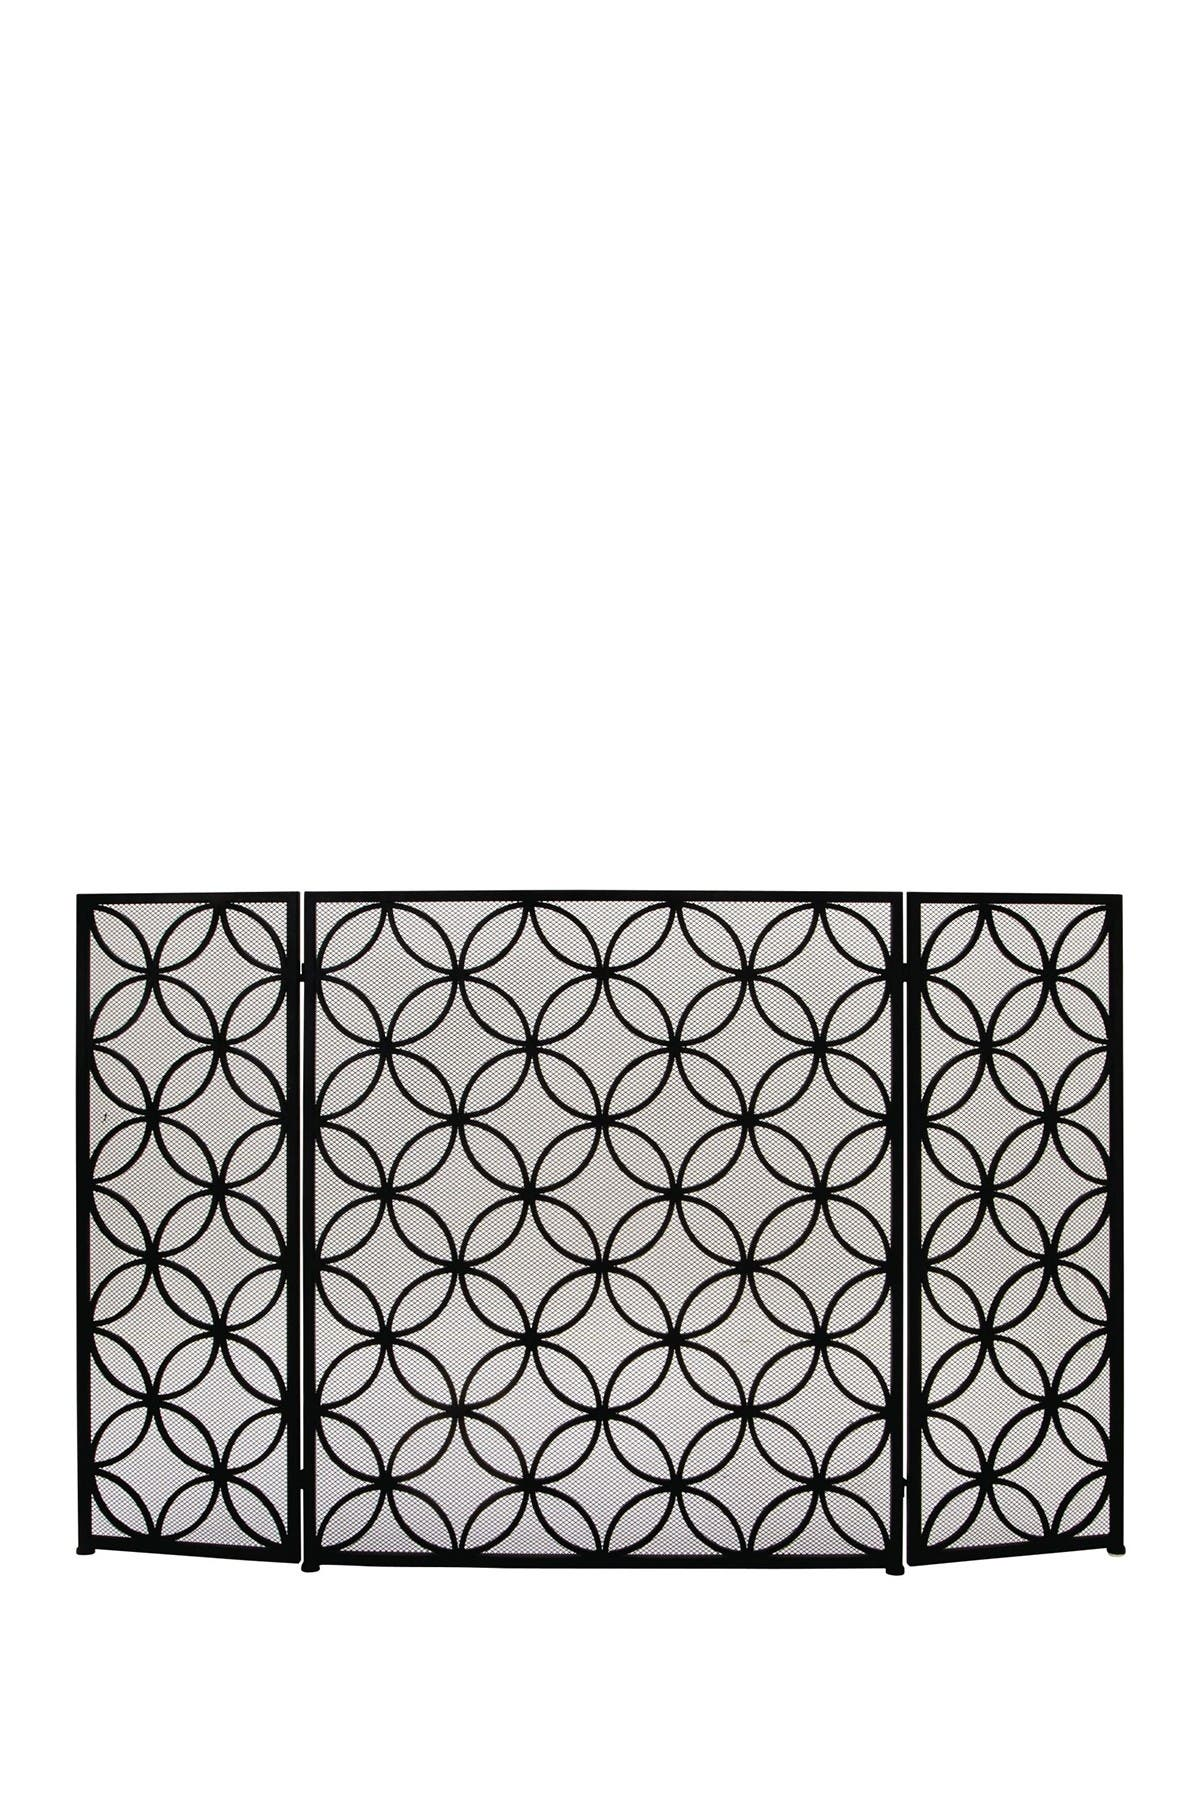 Image of Willow Row Metal Circle Trellis Fire Screen